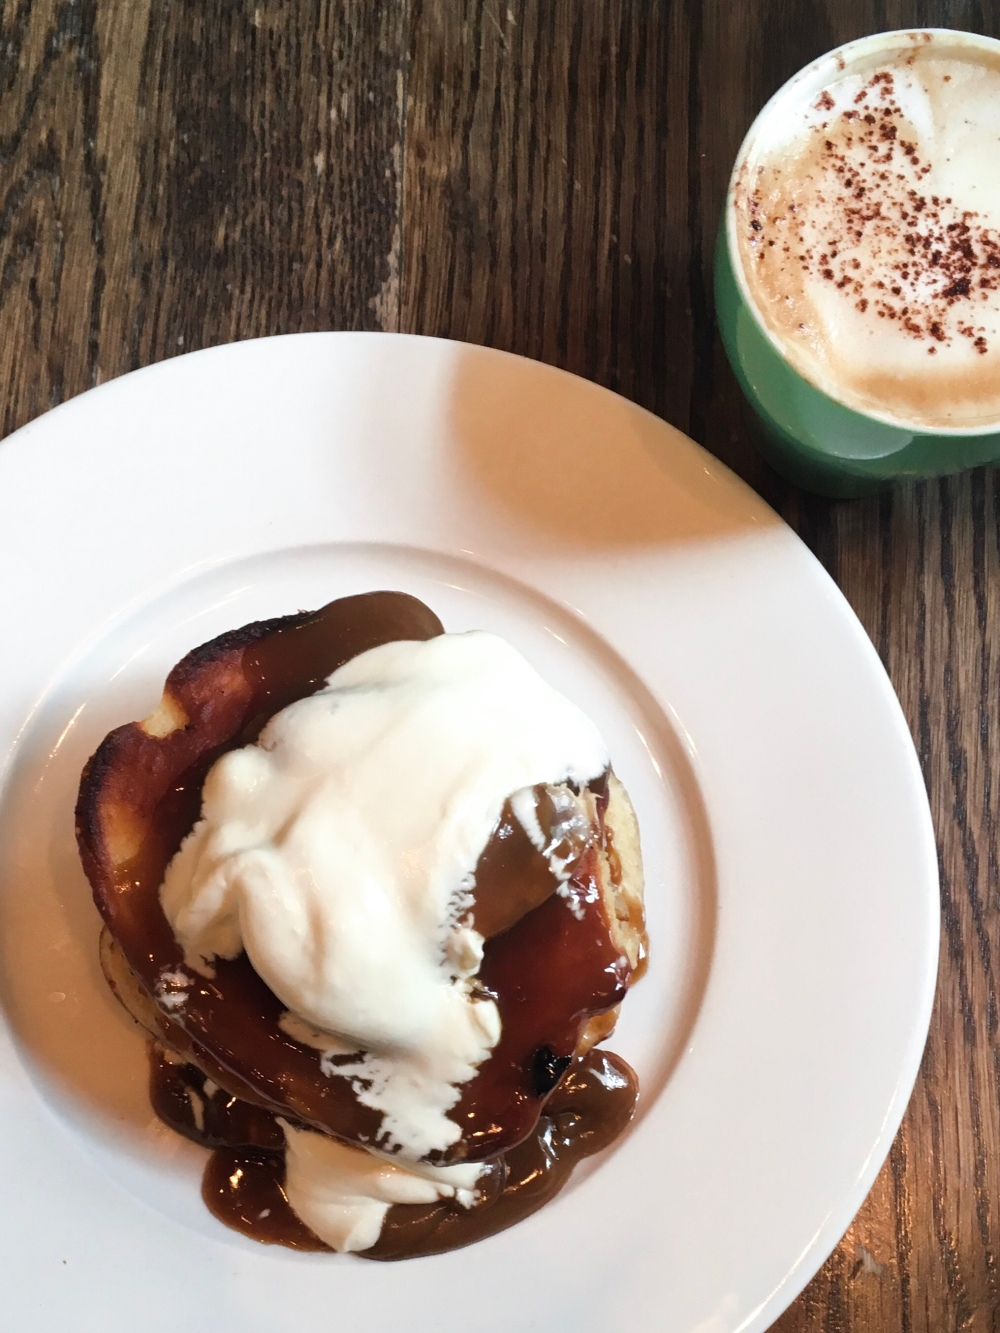 butterscotch pancakes and a cappuccino